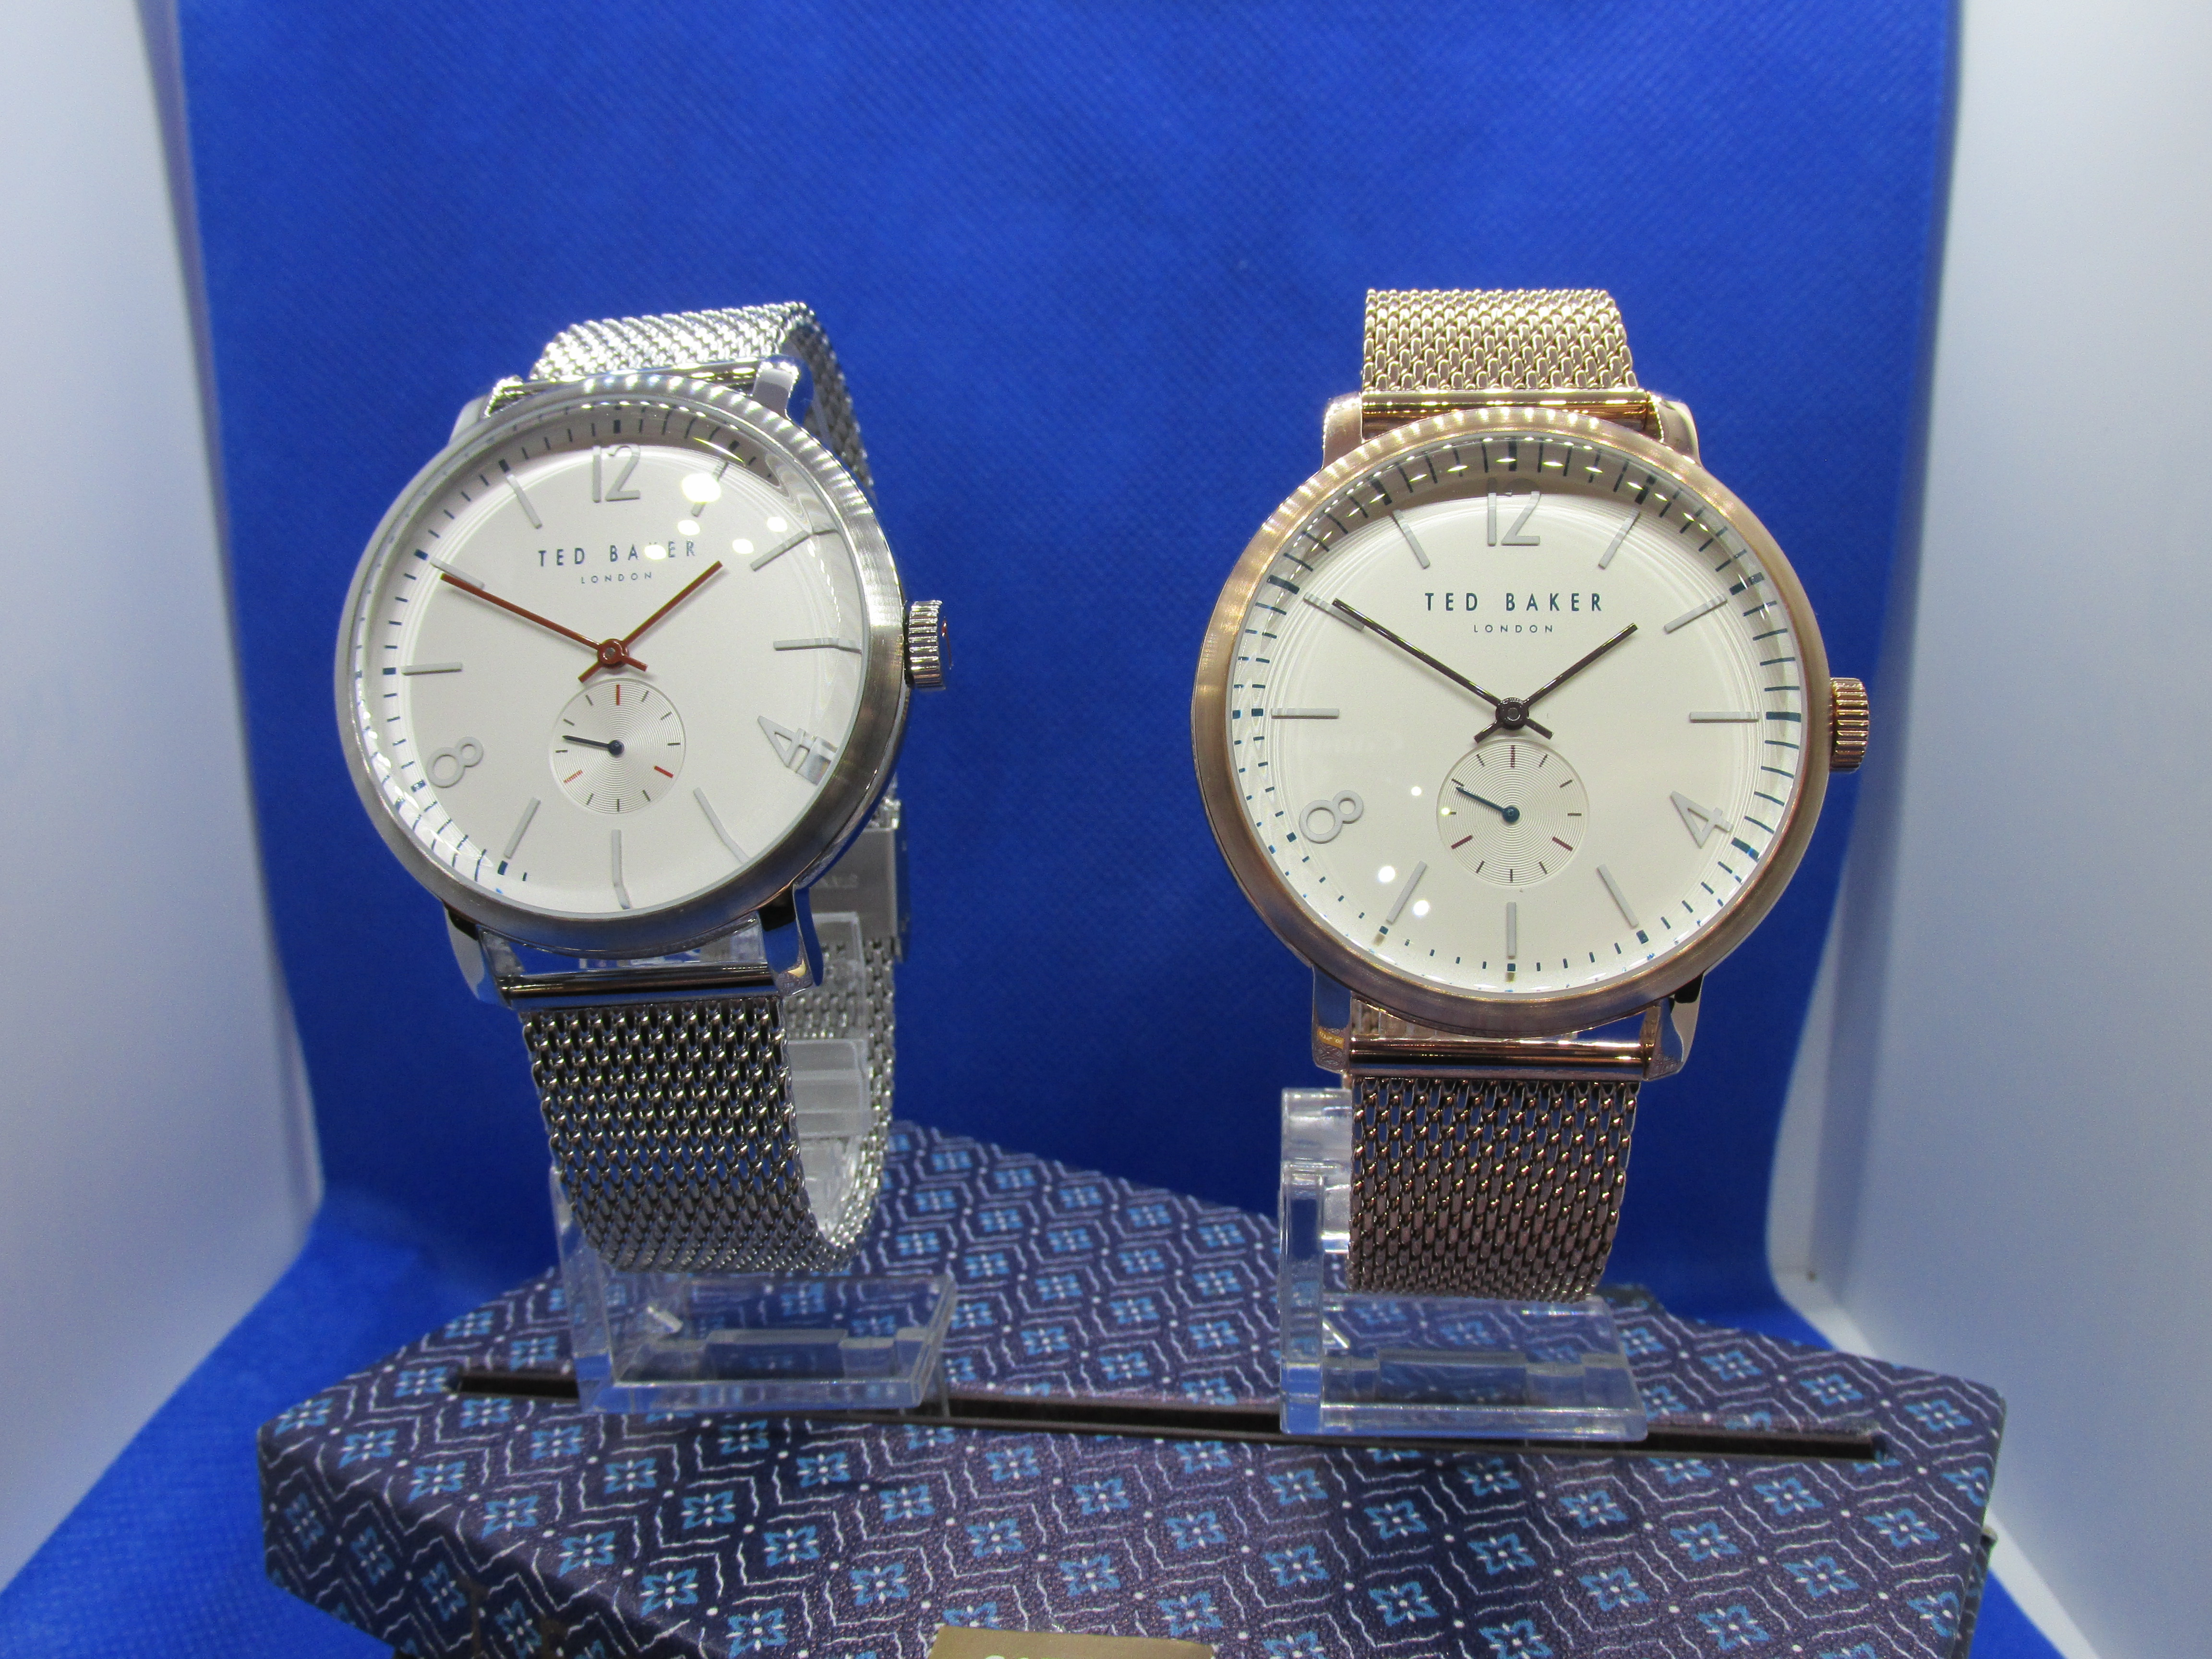 Up to 50% off Watches Buy now limited time offer